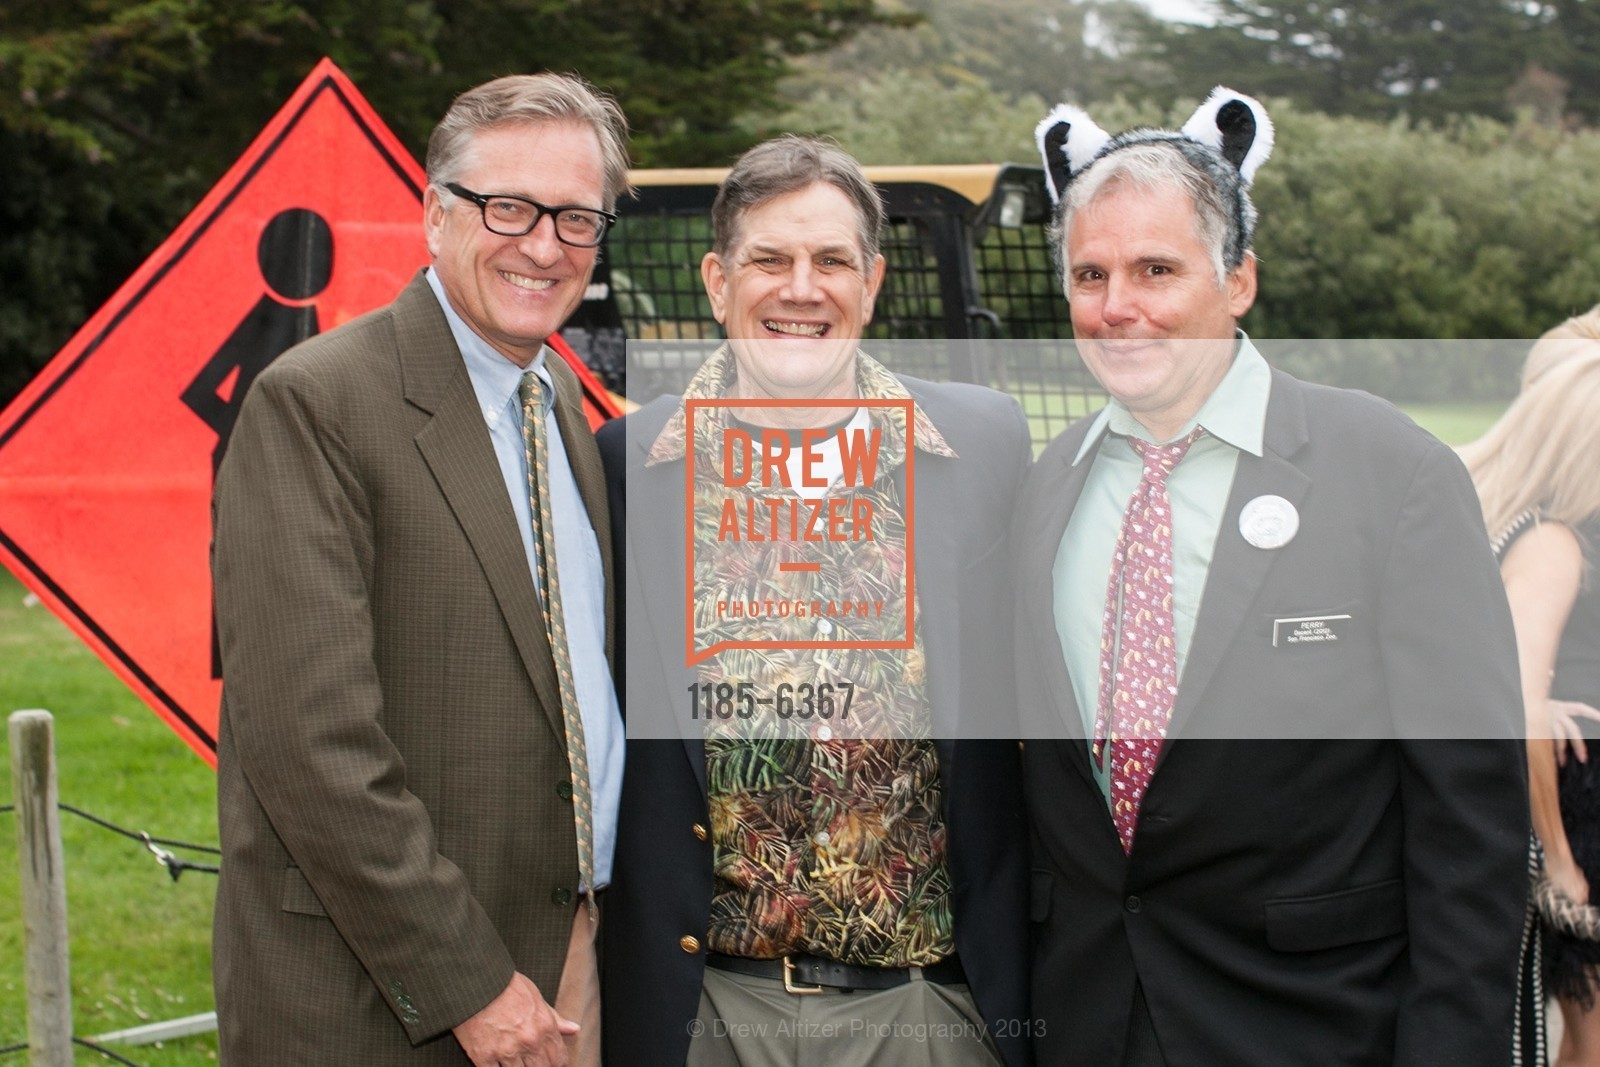 Mark Lerdal, Bill Hudson, Perry Matlock, ZooFest 2013 Hard Hat & Tails, US, May 11th, 2013,Drew Altizer, Drew Altizer Photography, full-service agency, private events, San Francisco photographer, photographer california